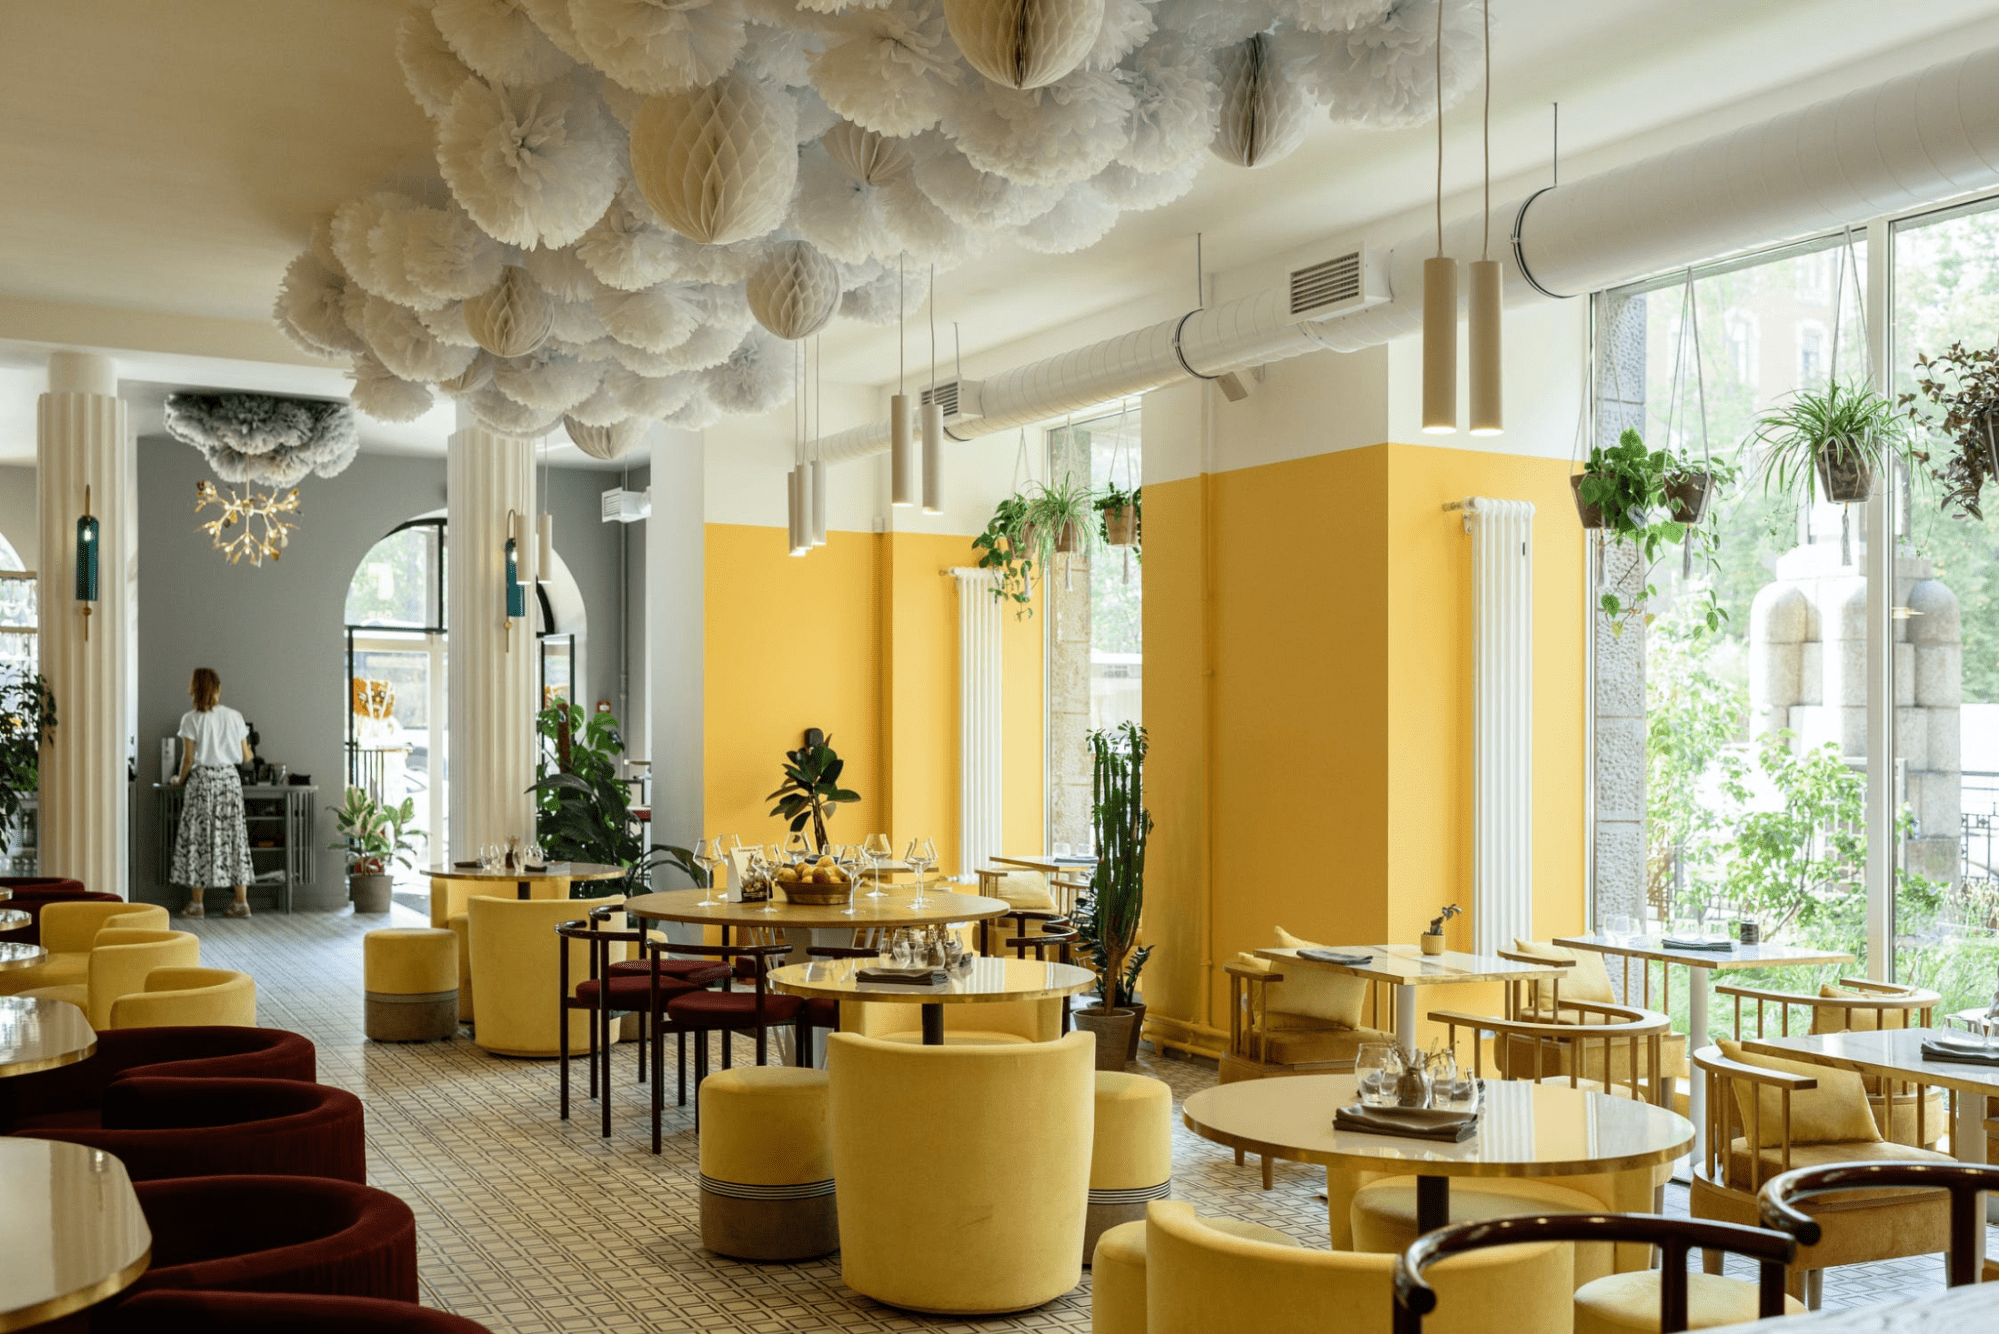 Restaurant with yellow decor and round tables